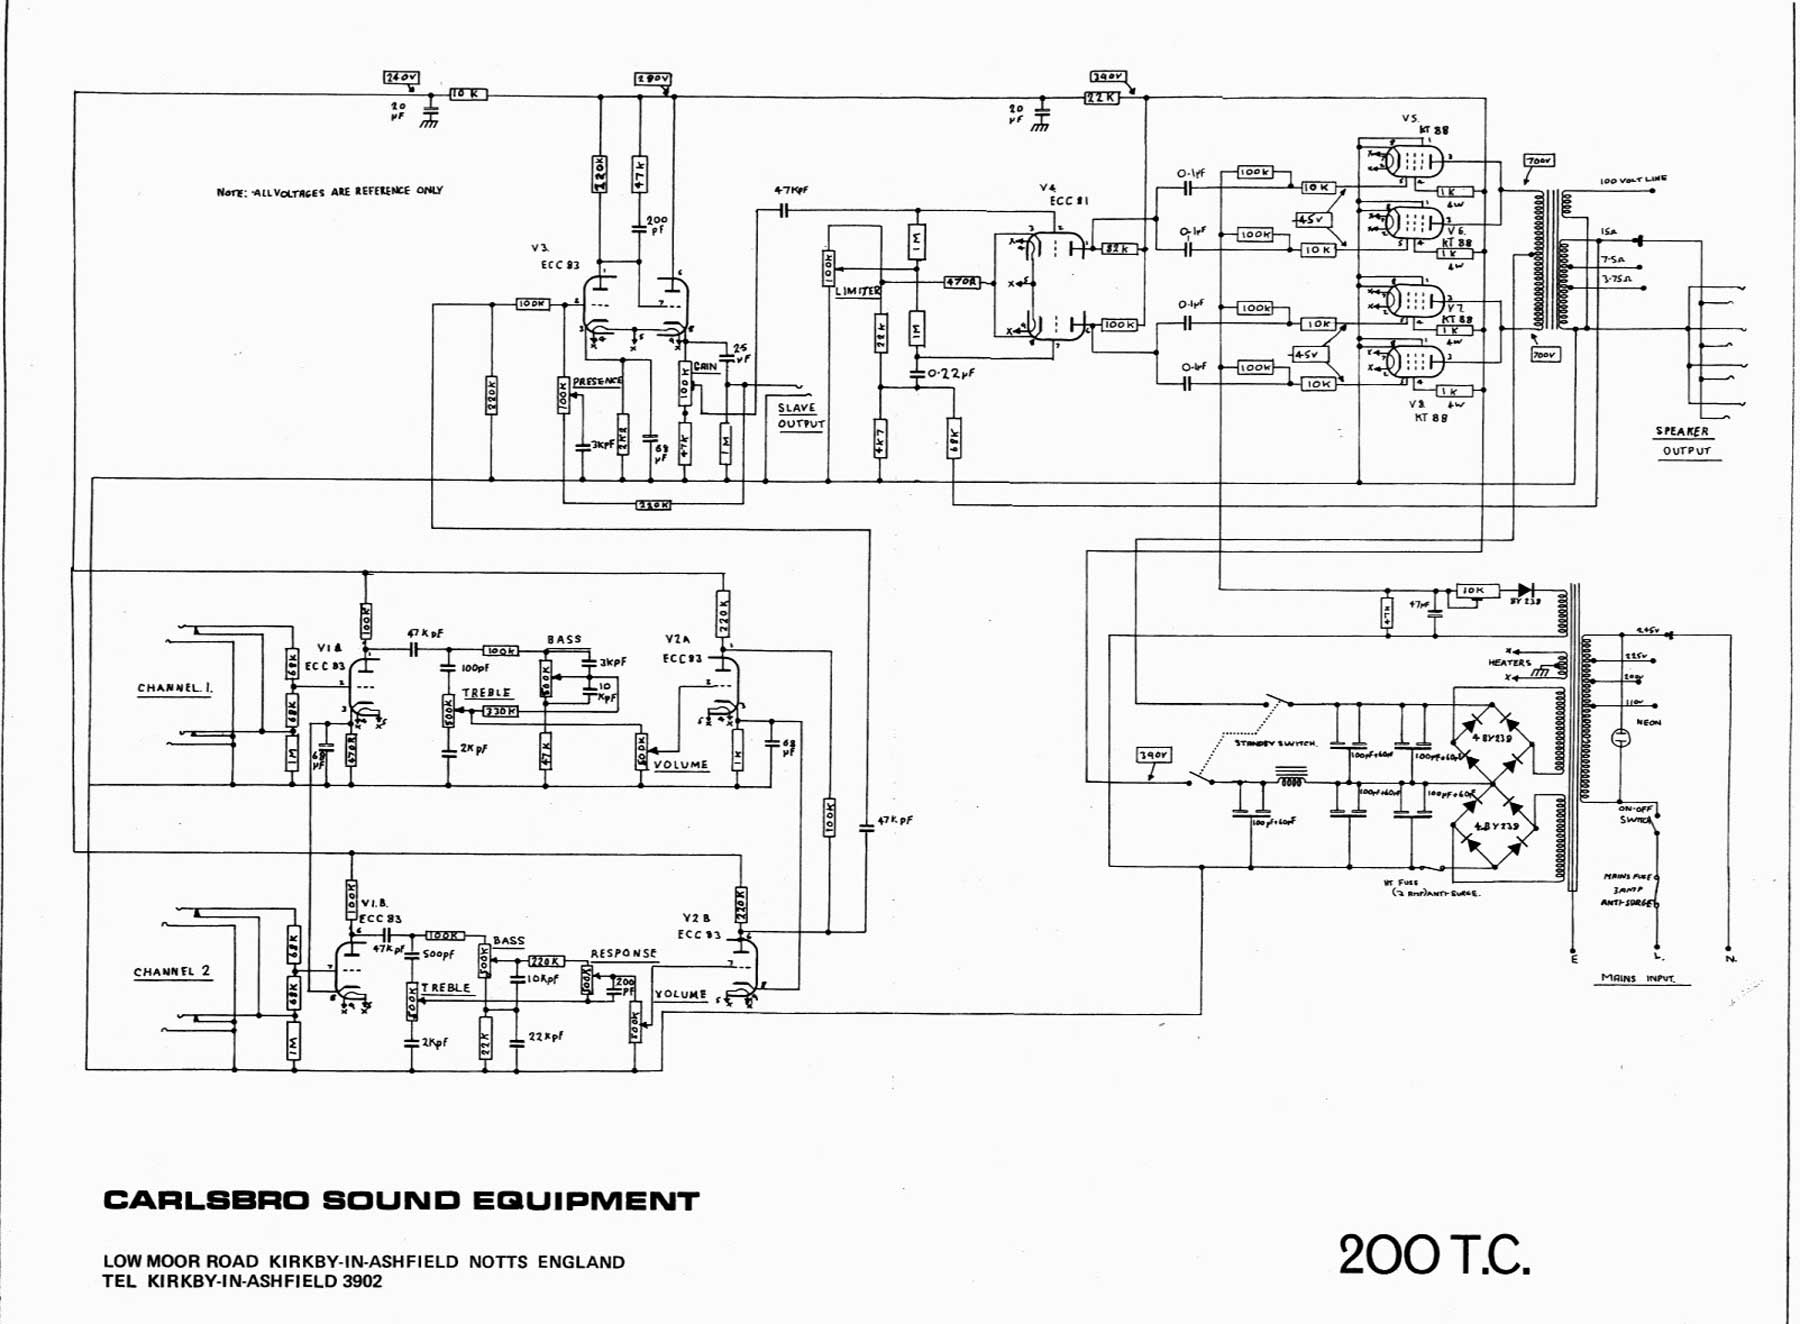 200tc peavey wiring diagrams peavey wiring diagrams collection peavey 410tx wiring diagram at crackthecode.co